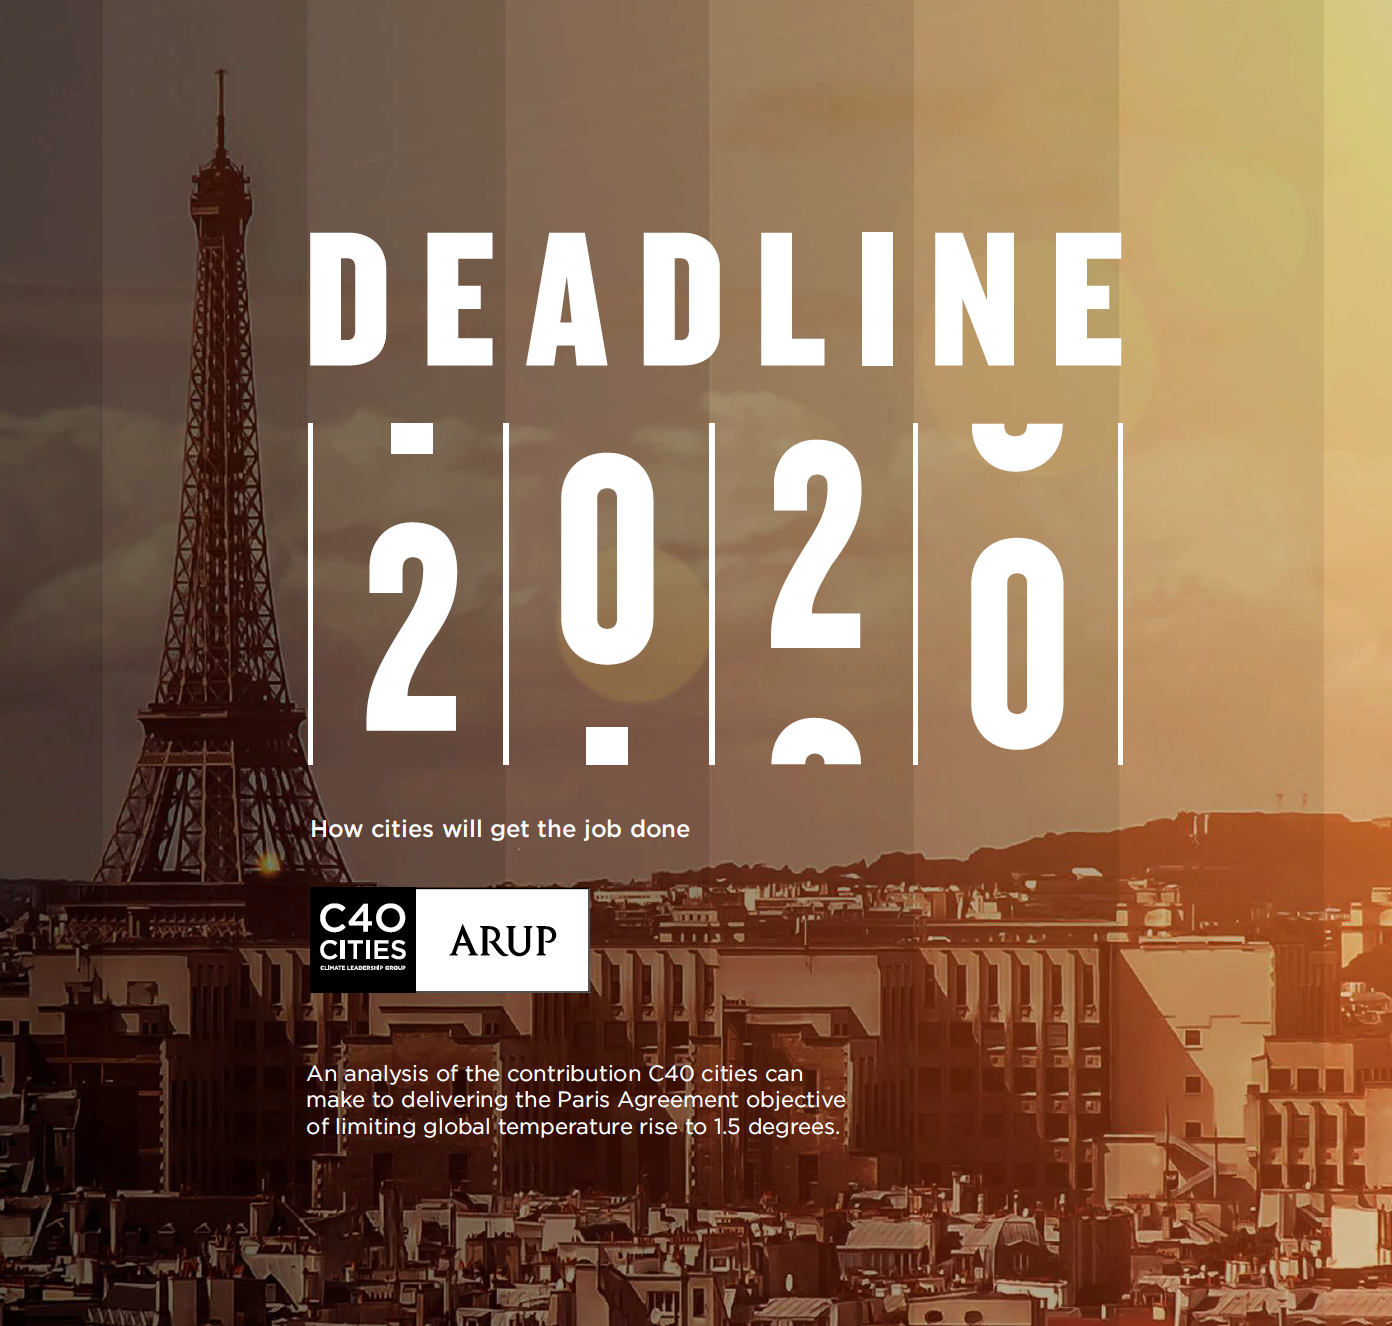 C40, deadlines 2020, ISWA, climate change, donald trump